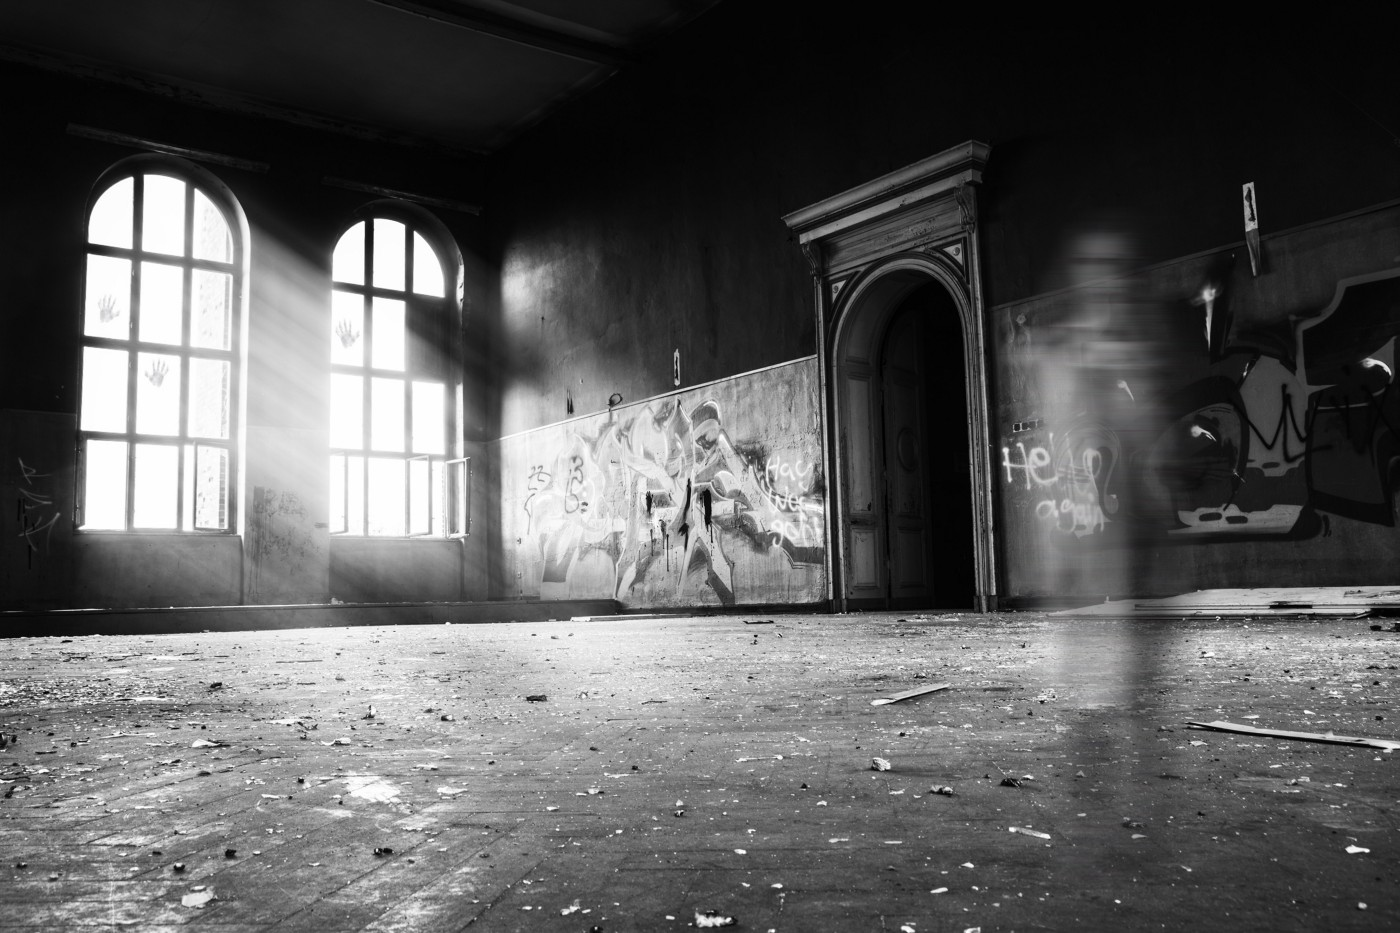 Spirits in an empty room